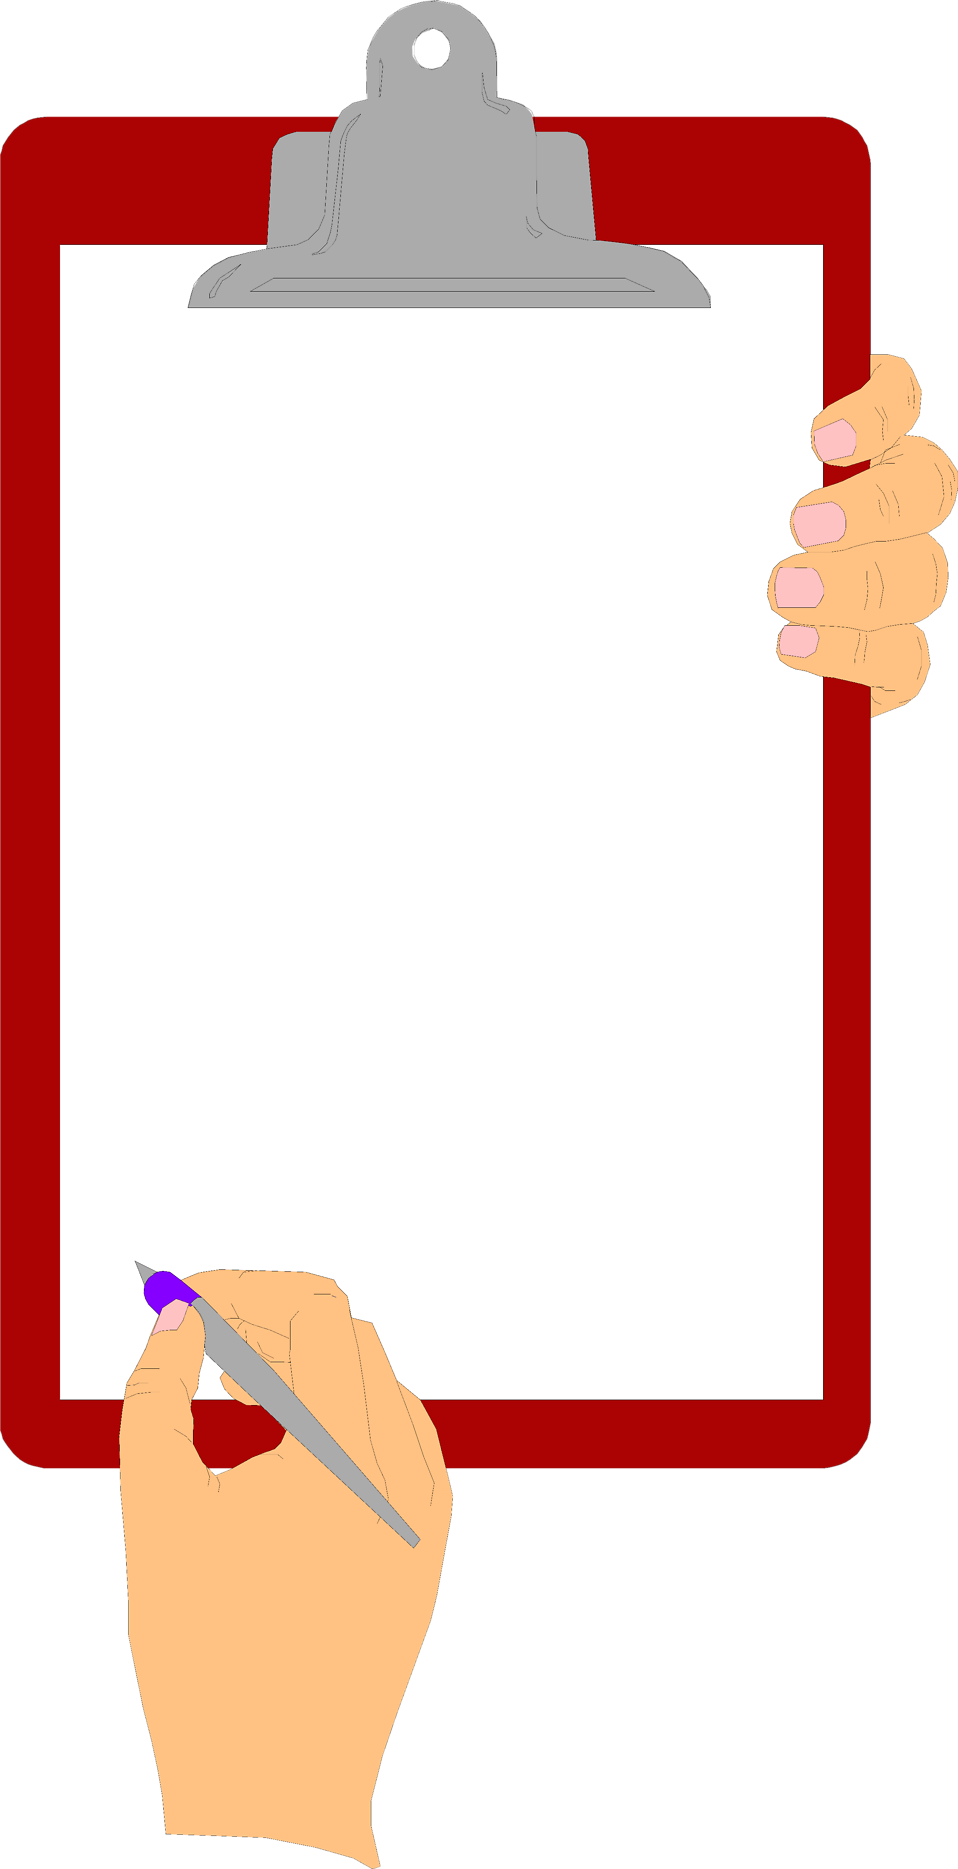 Holding book clipart svg royalty free library Free Stock Photo: Illustration of hands holding a blank clipboard ... svg royalty free library